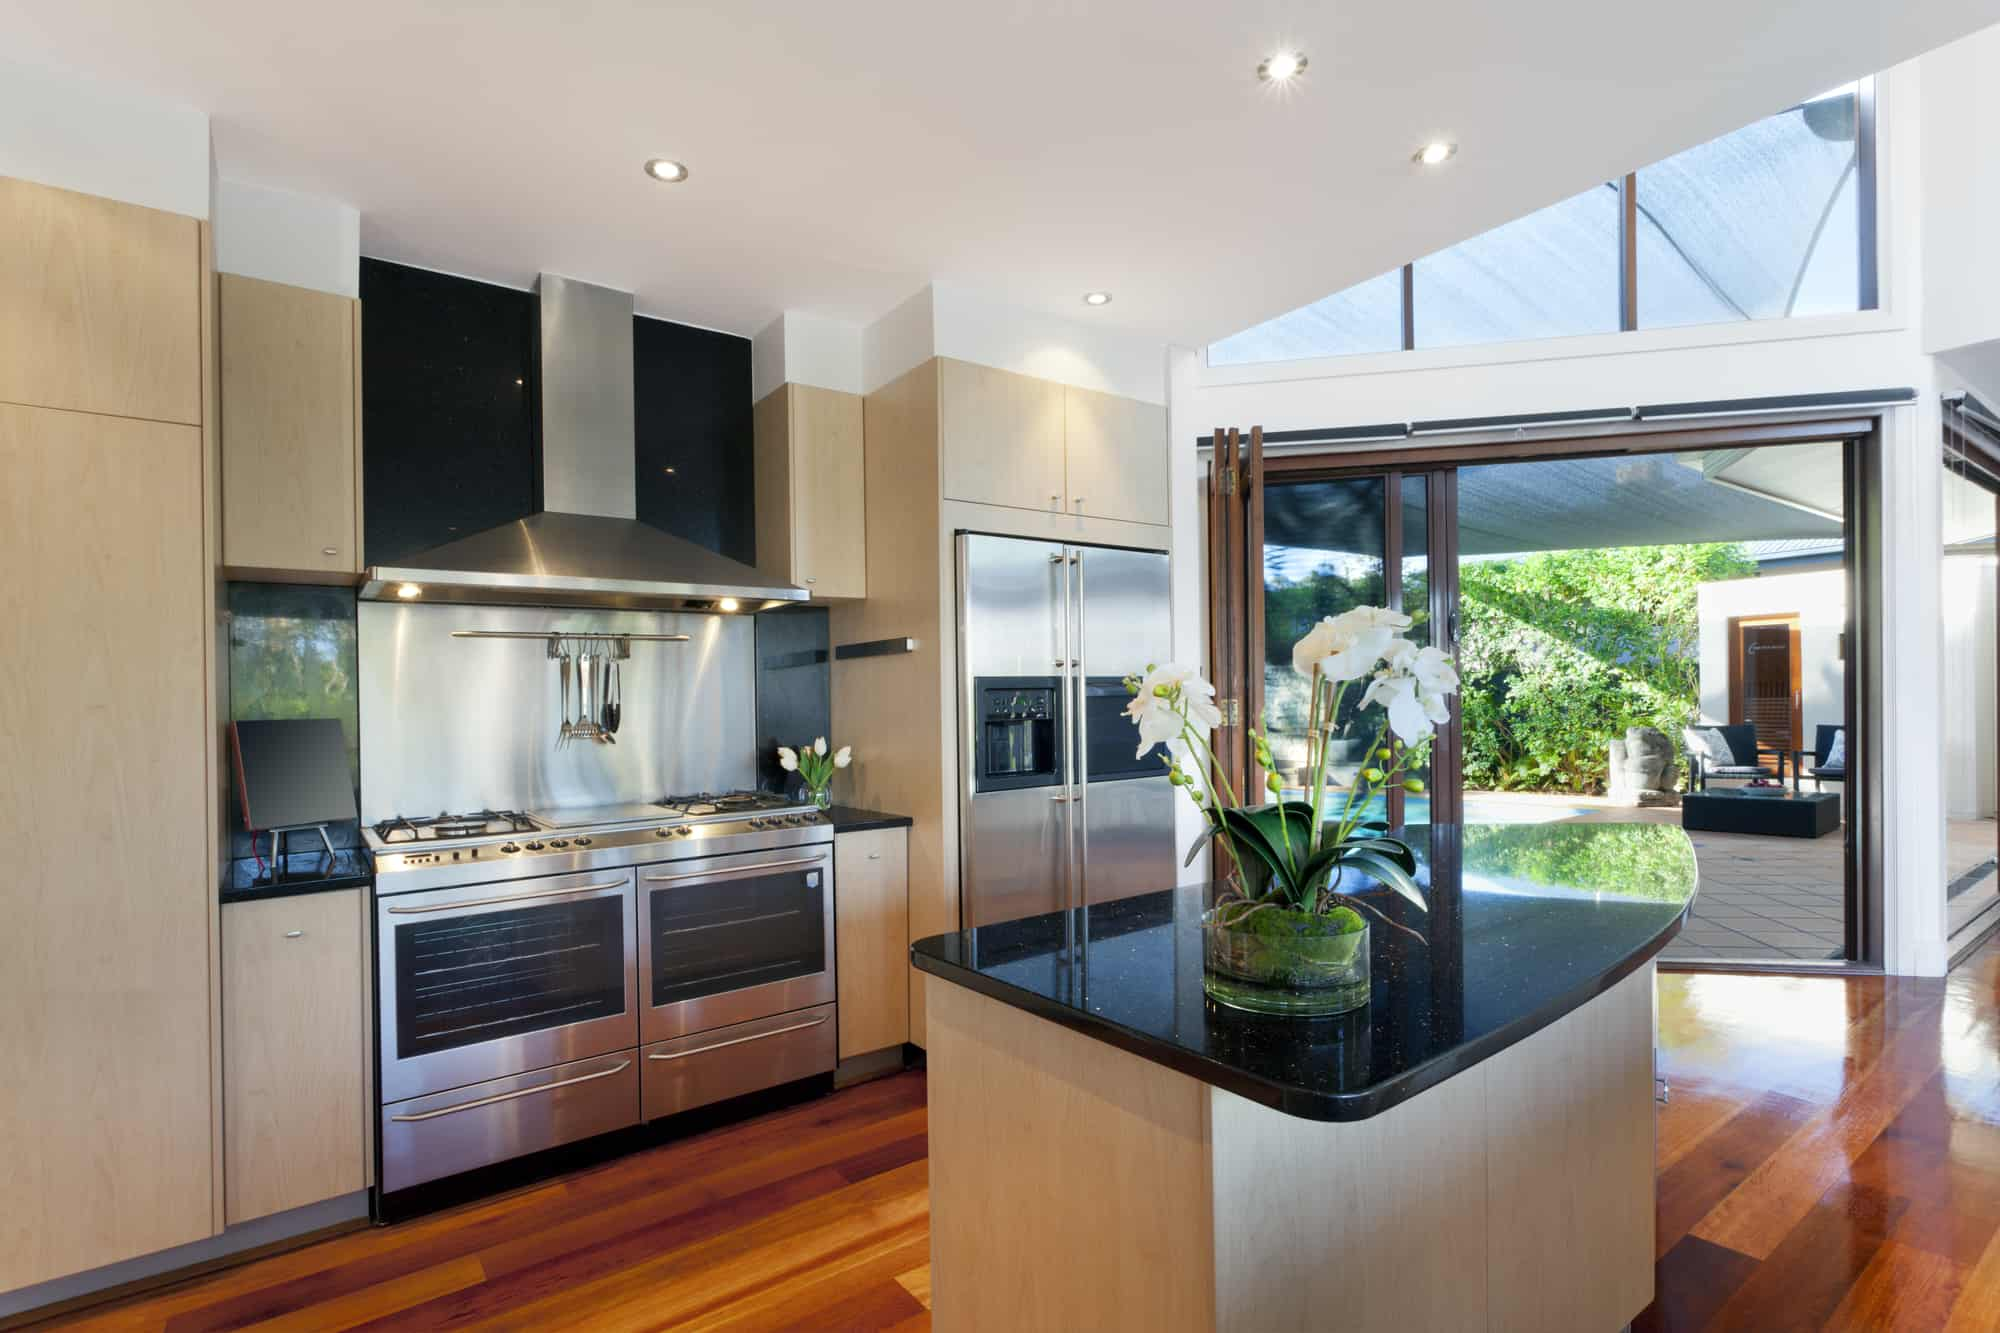 What Should You Consider When Buying A Range Hood?